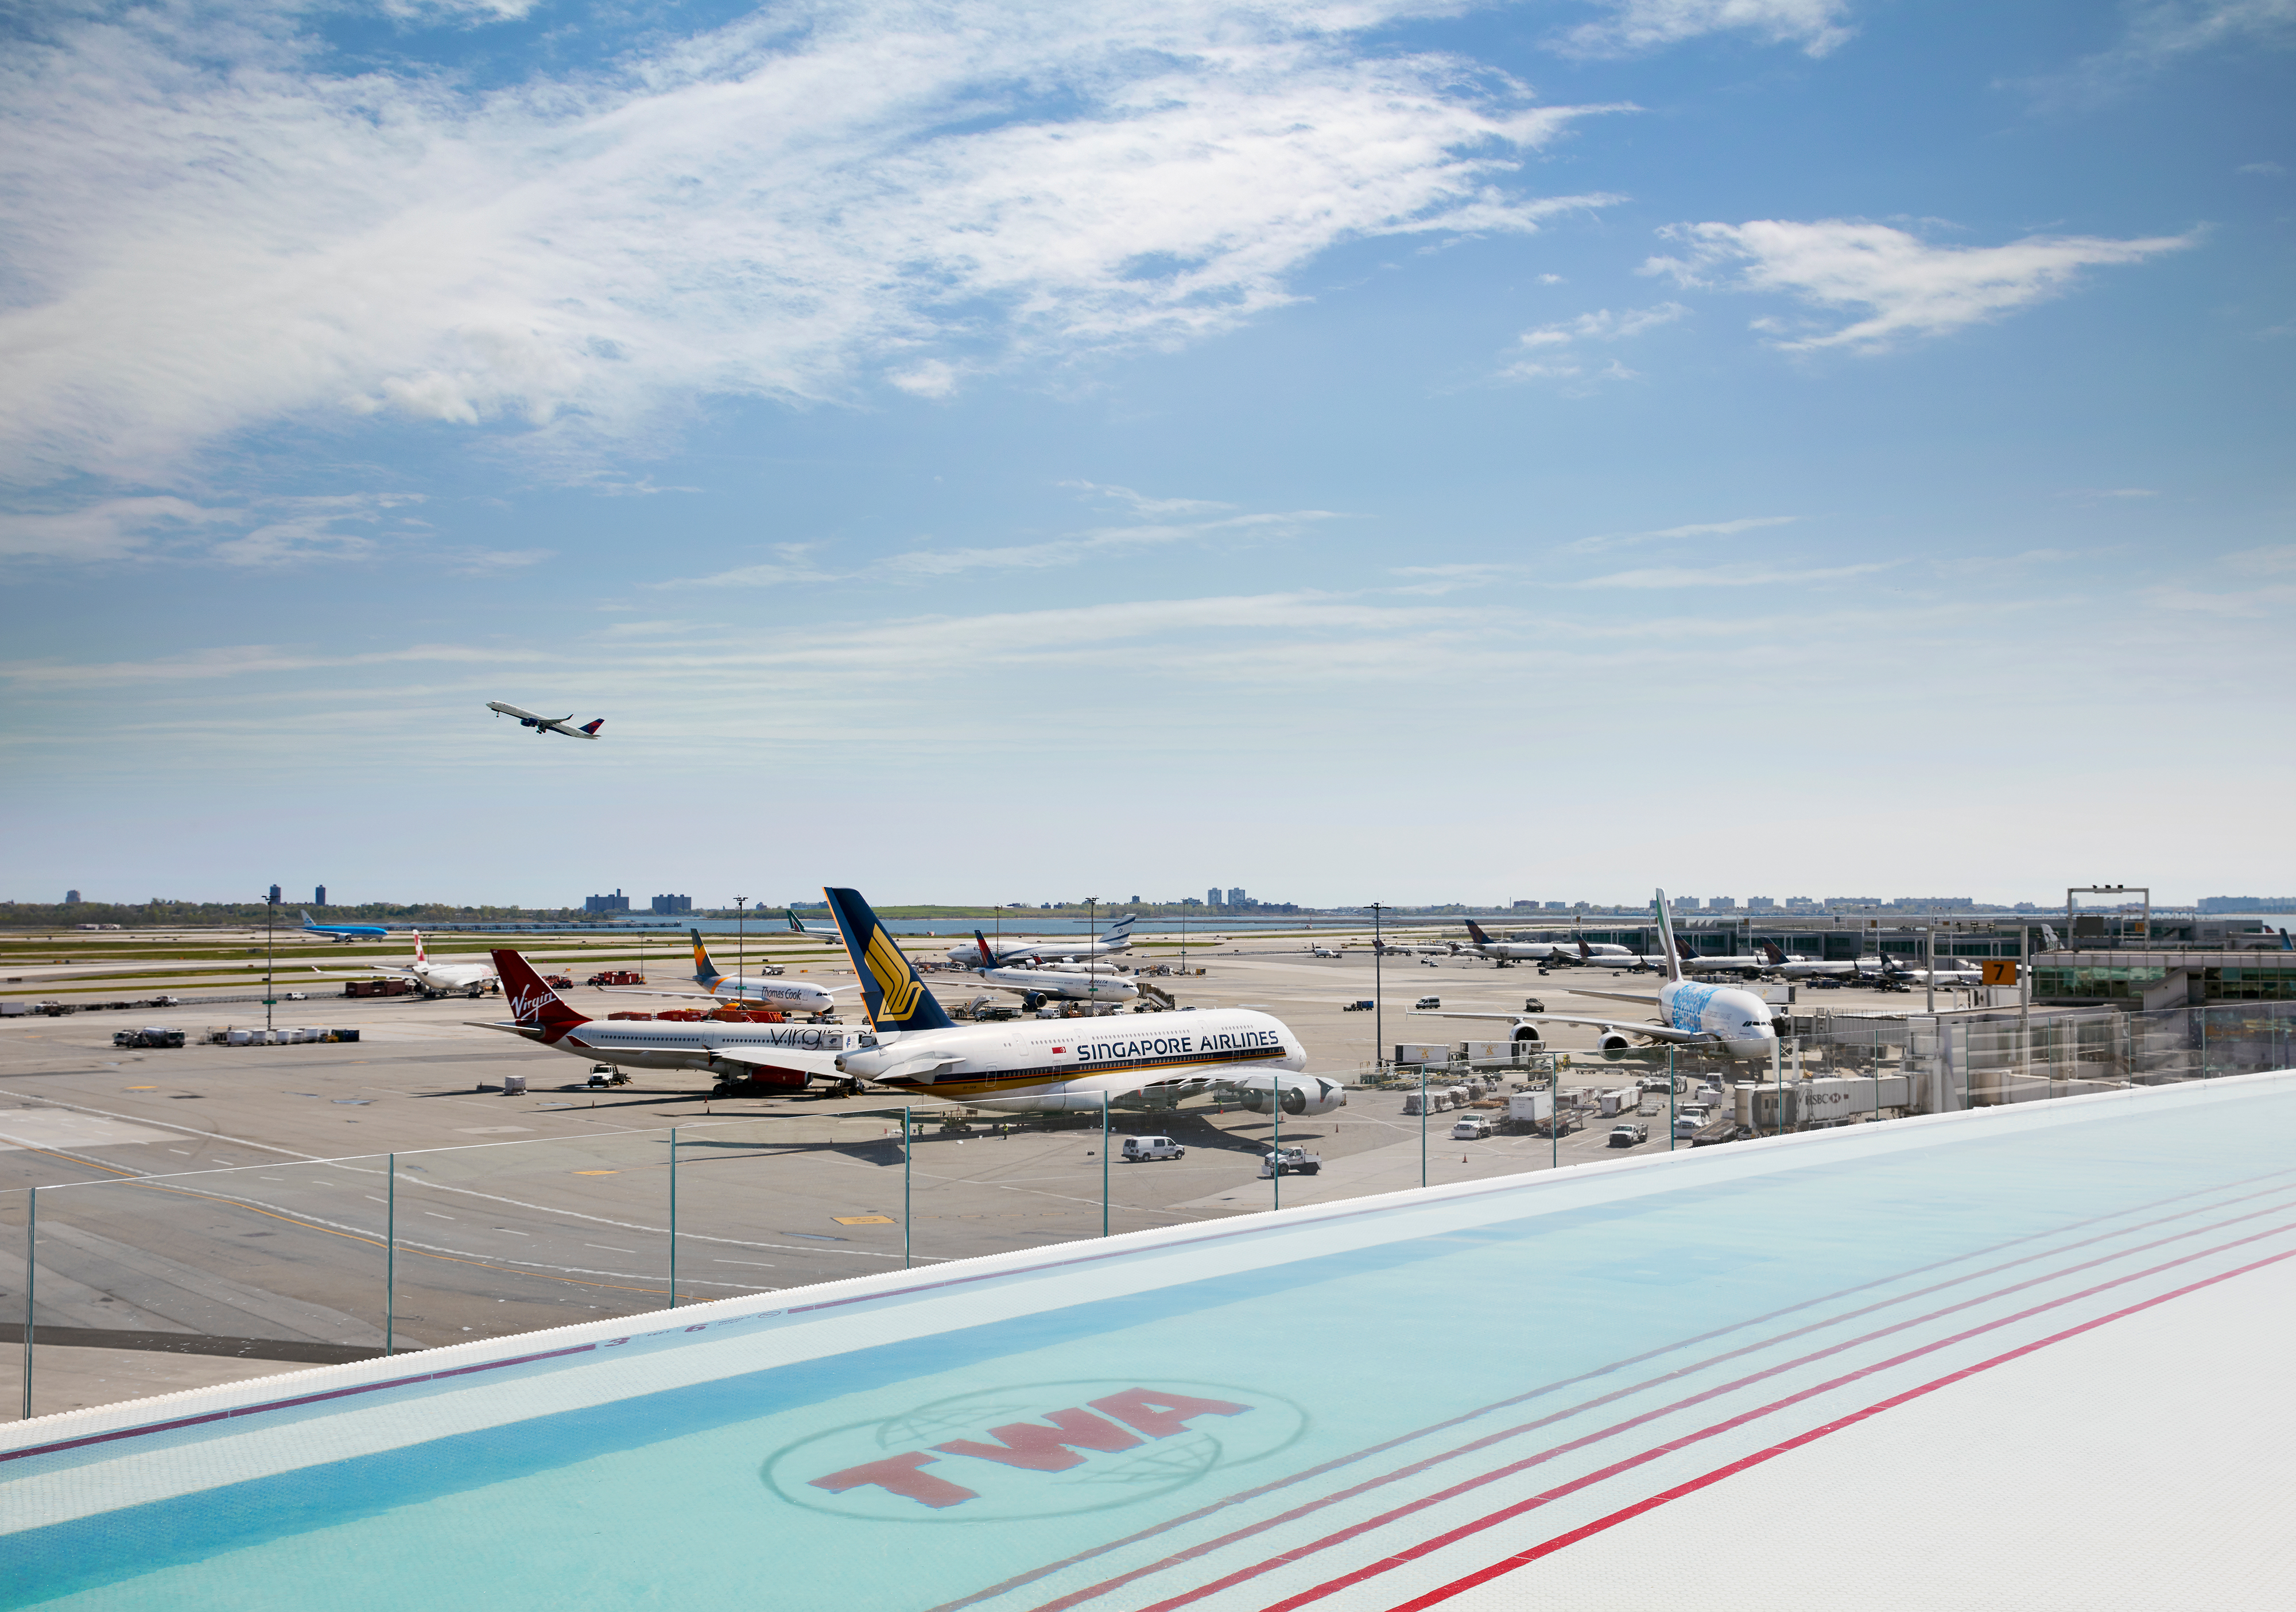 A swimming pool is in the foreground. The letters TWA are written on the bottom of the pool. In the distance are airplanes on an airport runway.